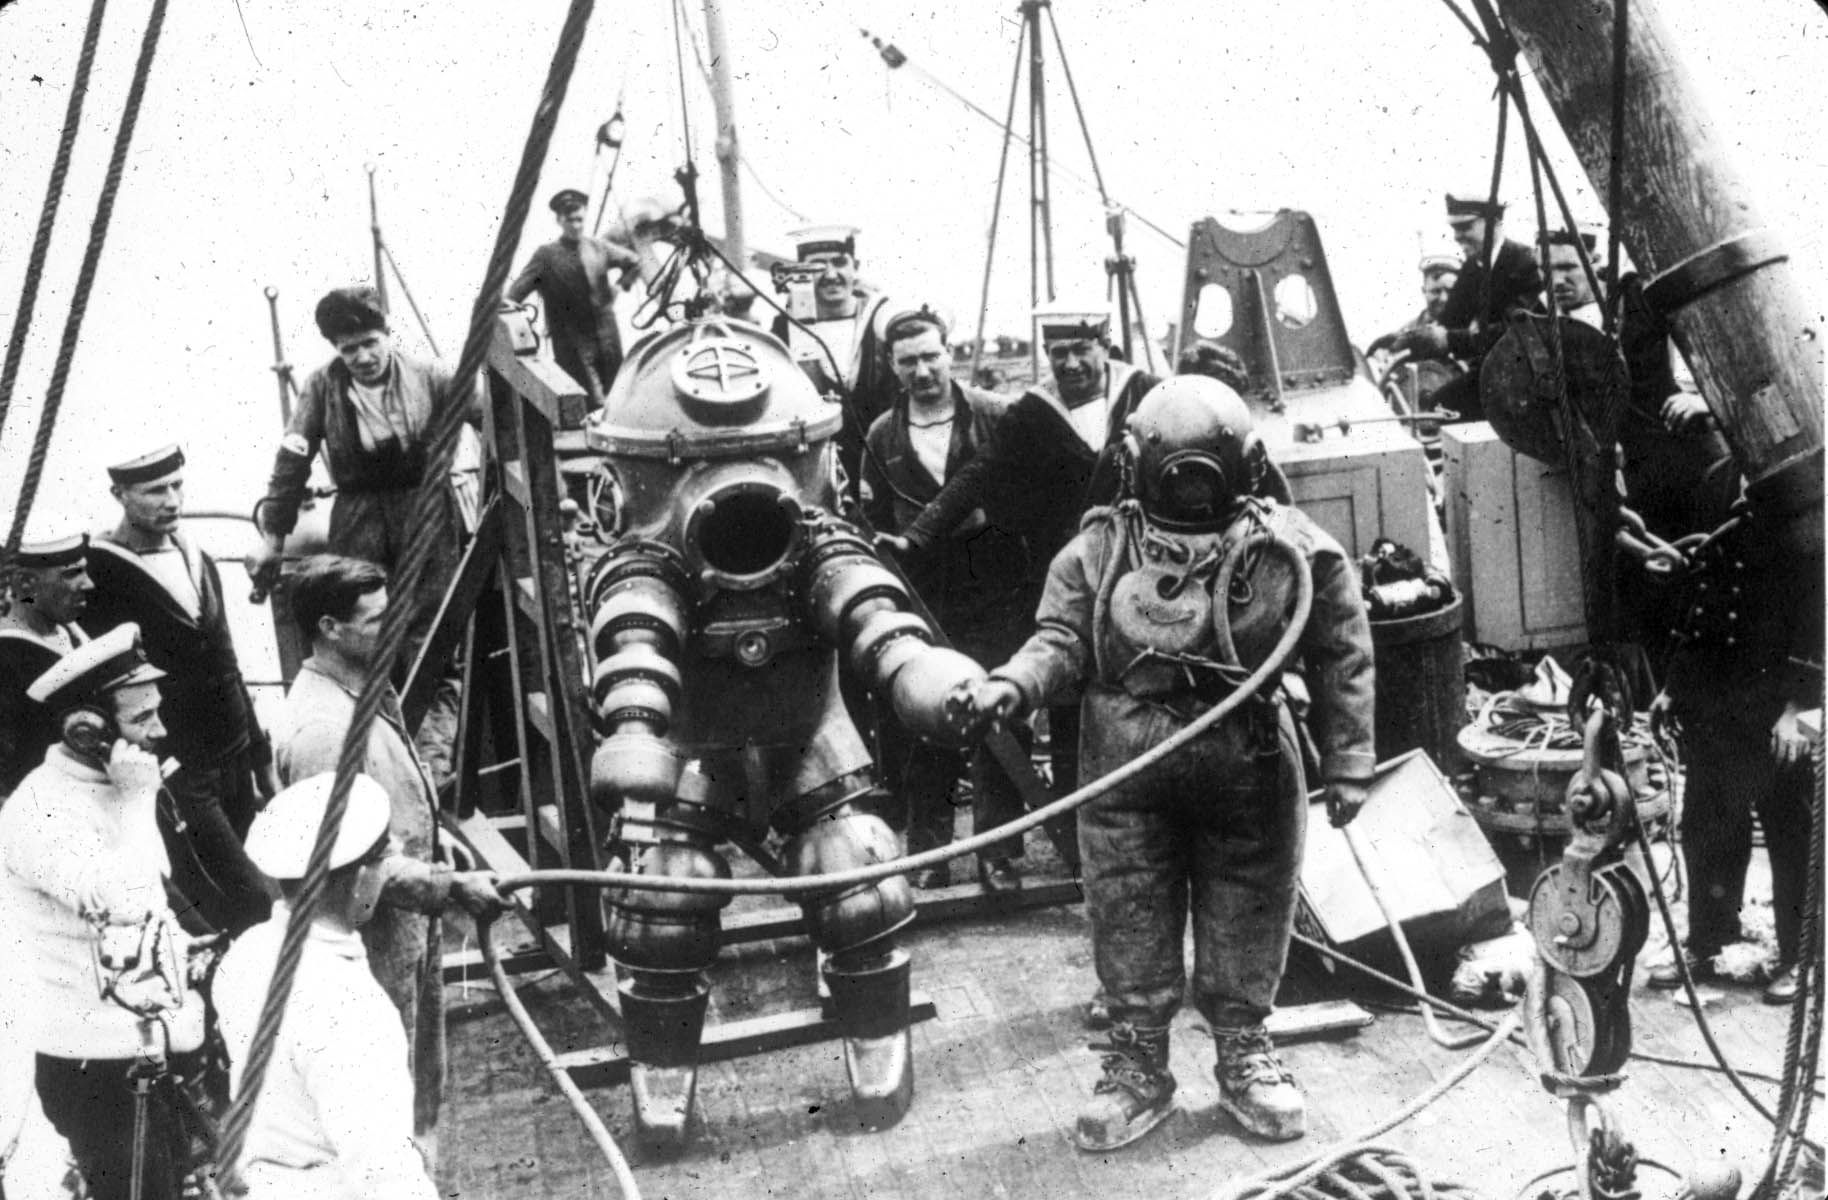 Breve storia dell'A.D.S. Atmospheric Diving Suit di Andrea Mucedola